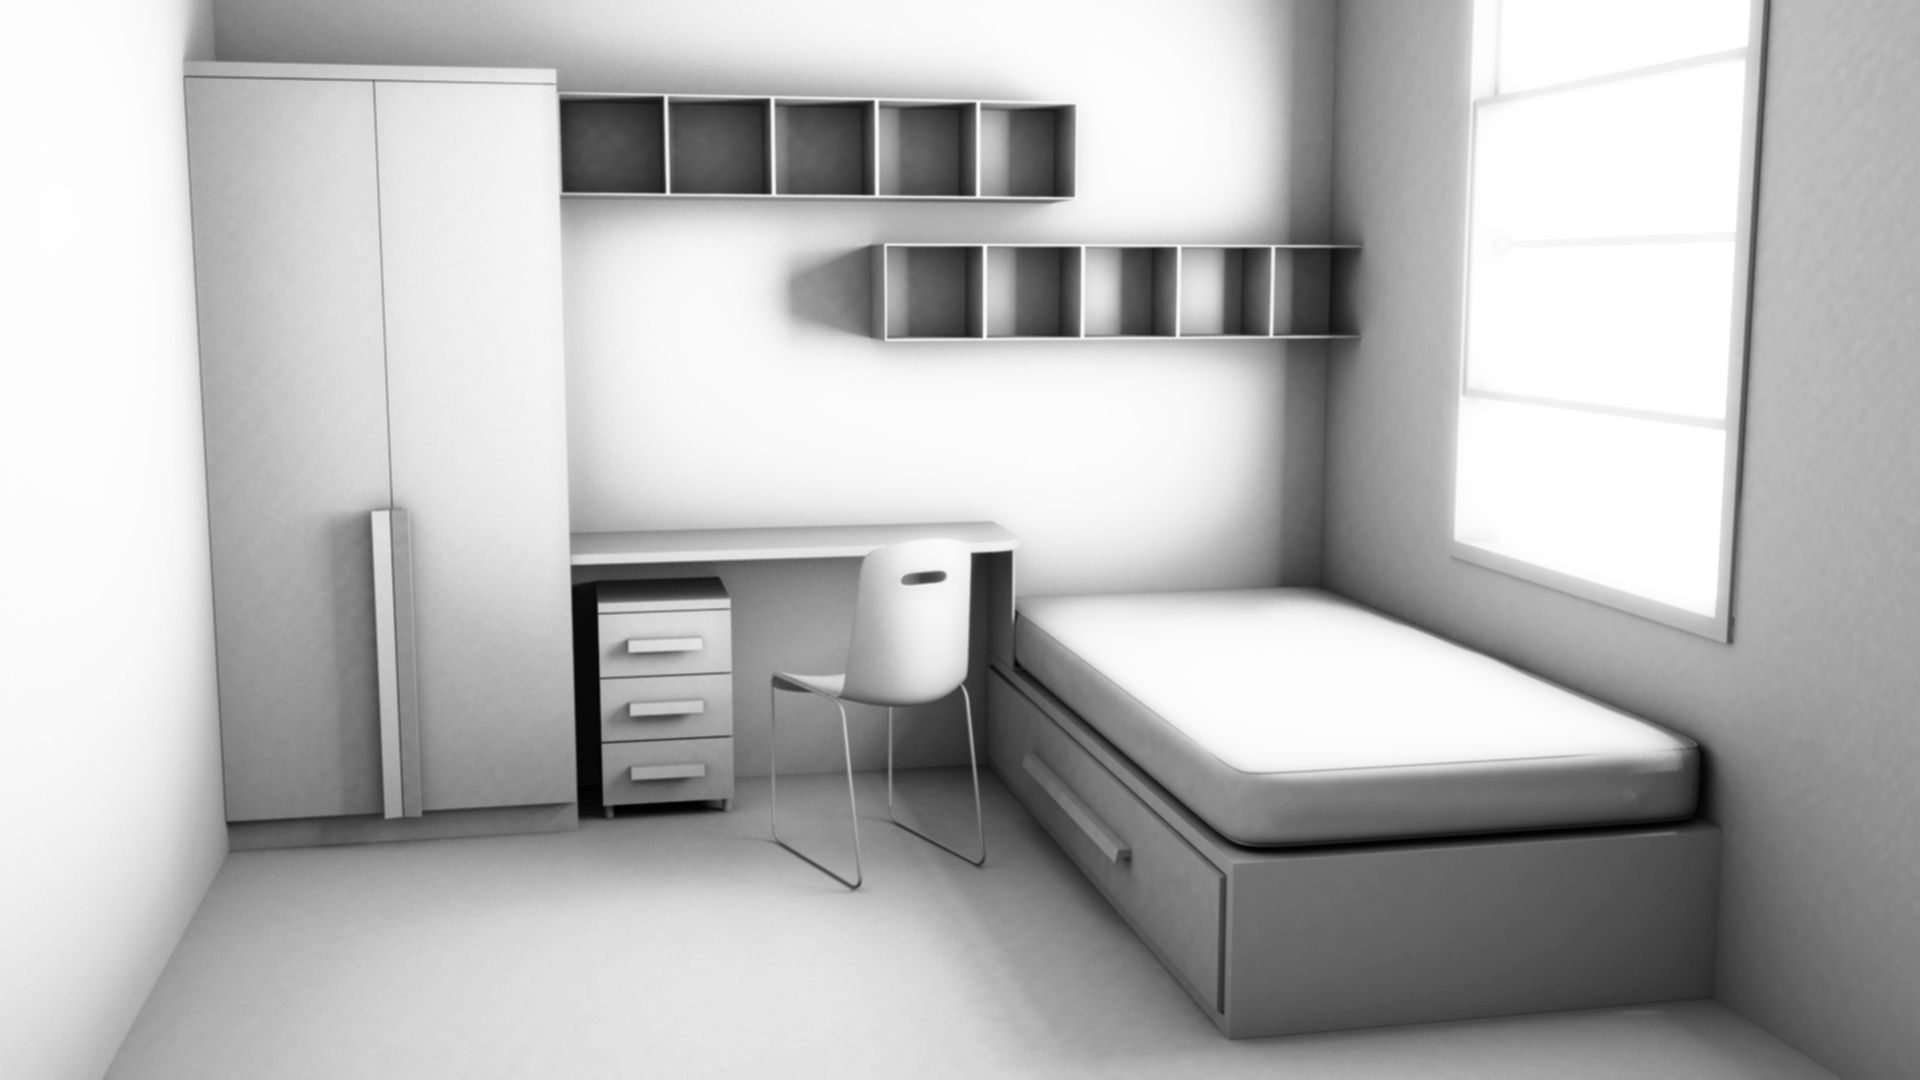 Interior bedroom followed tutorial ds max photoshop interior